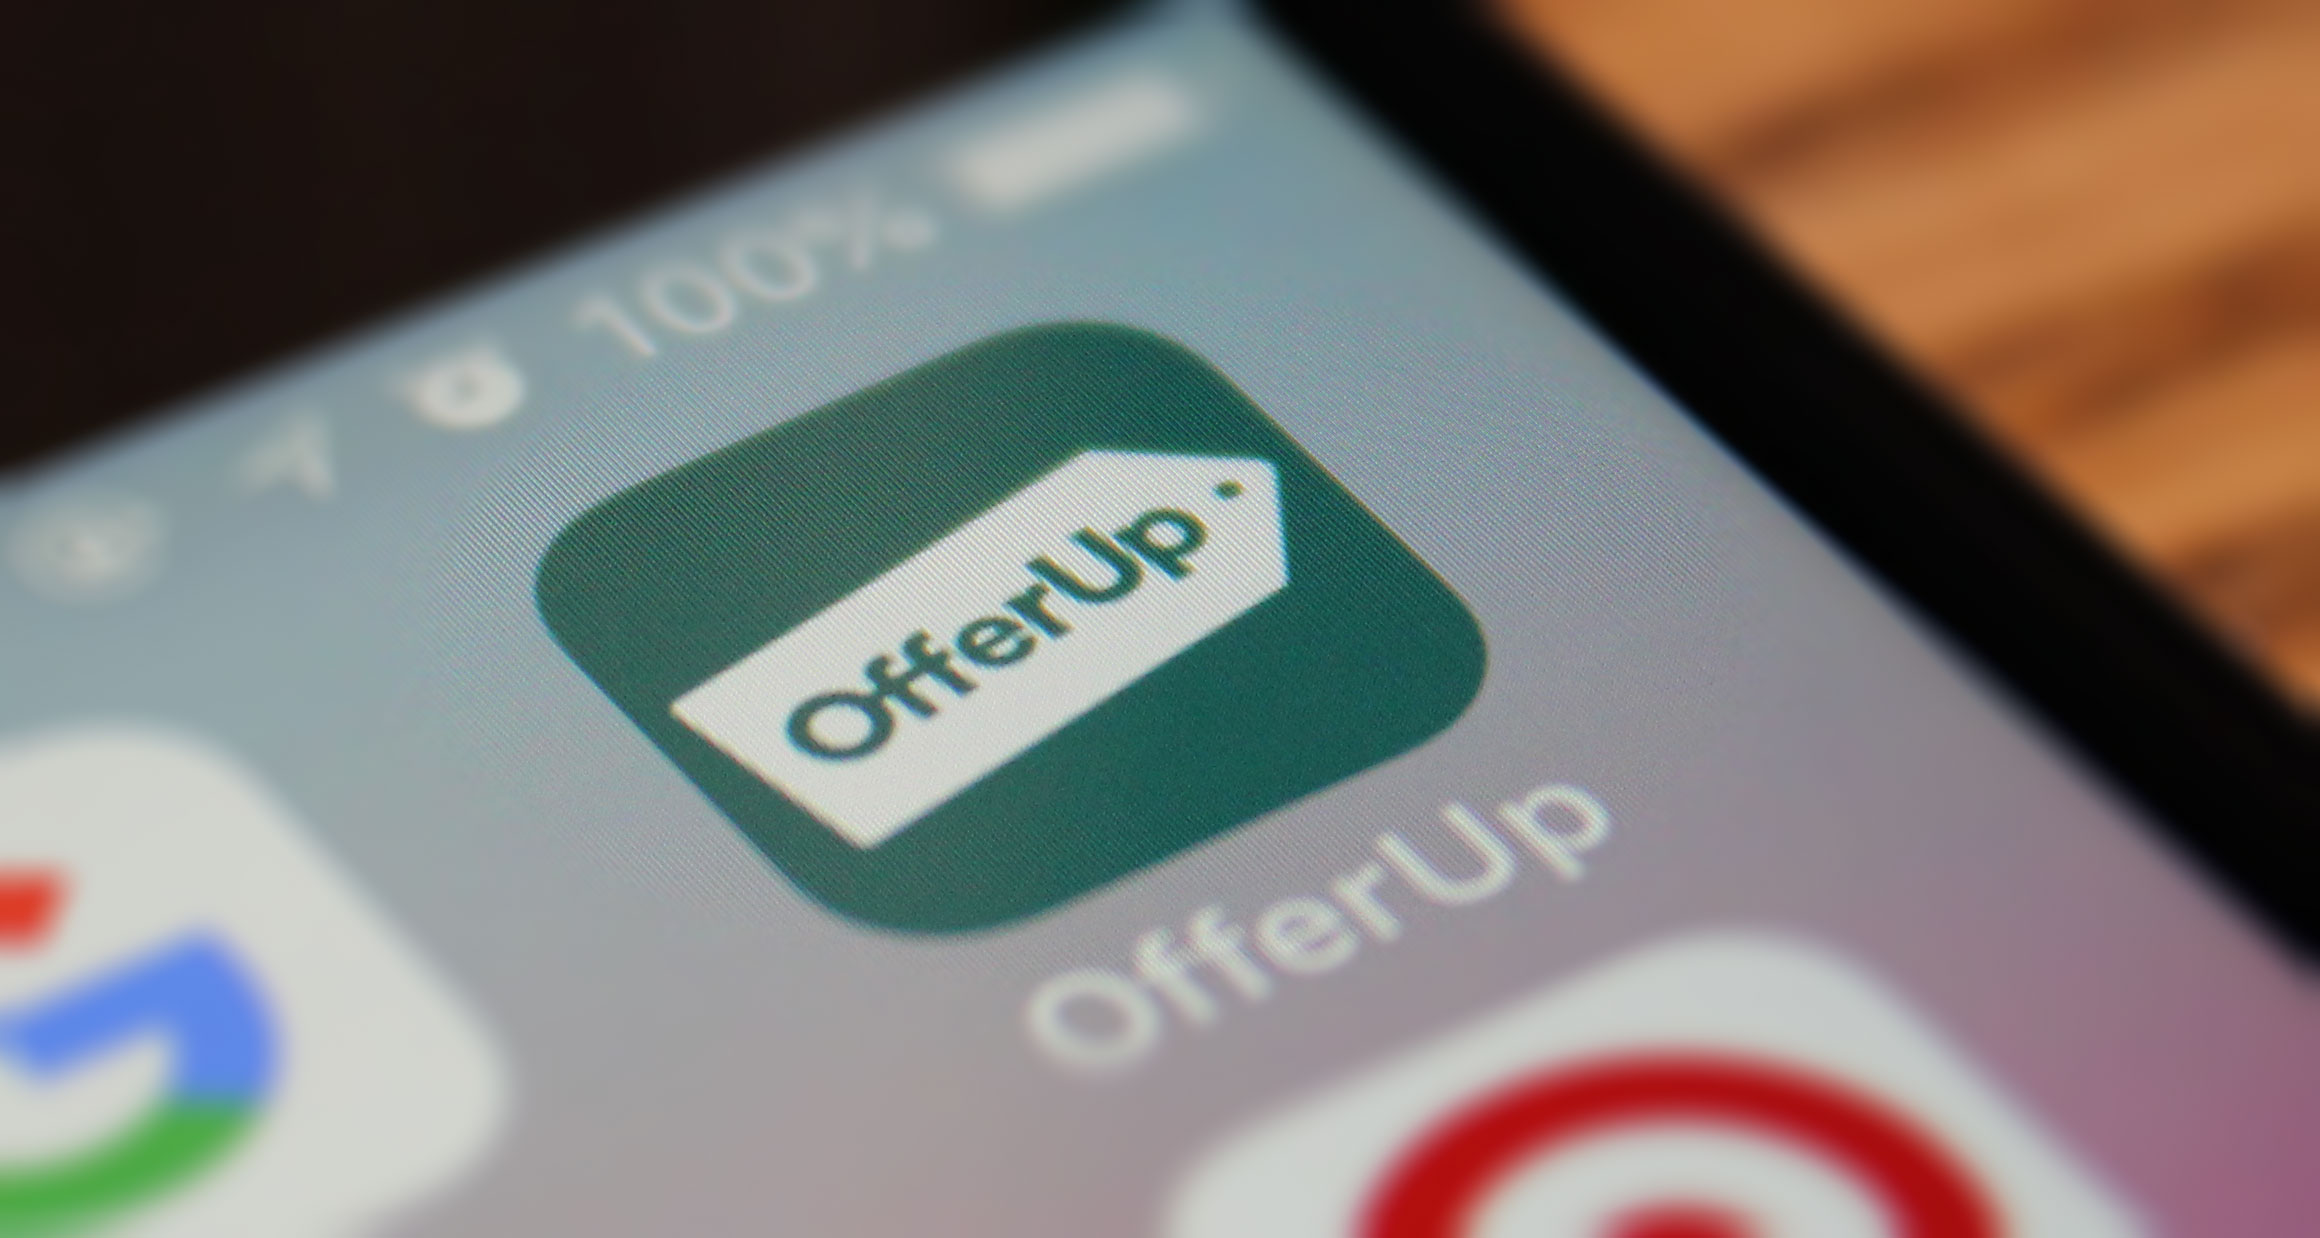 Local Marketplace Offerup Takes On Ebay With Launch Of Nationwide Shipping Techcrunch